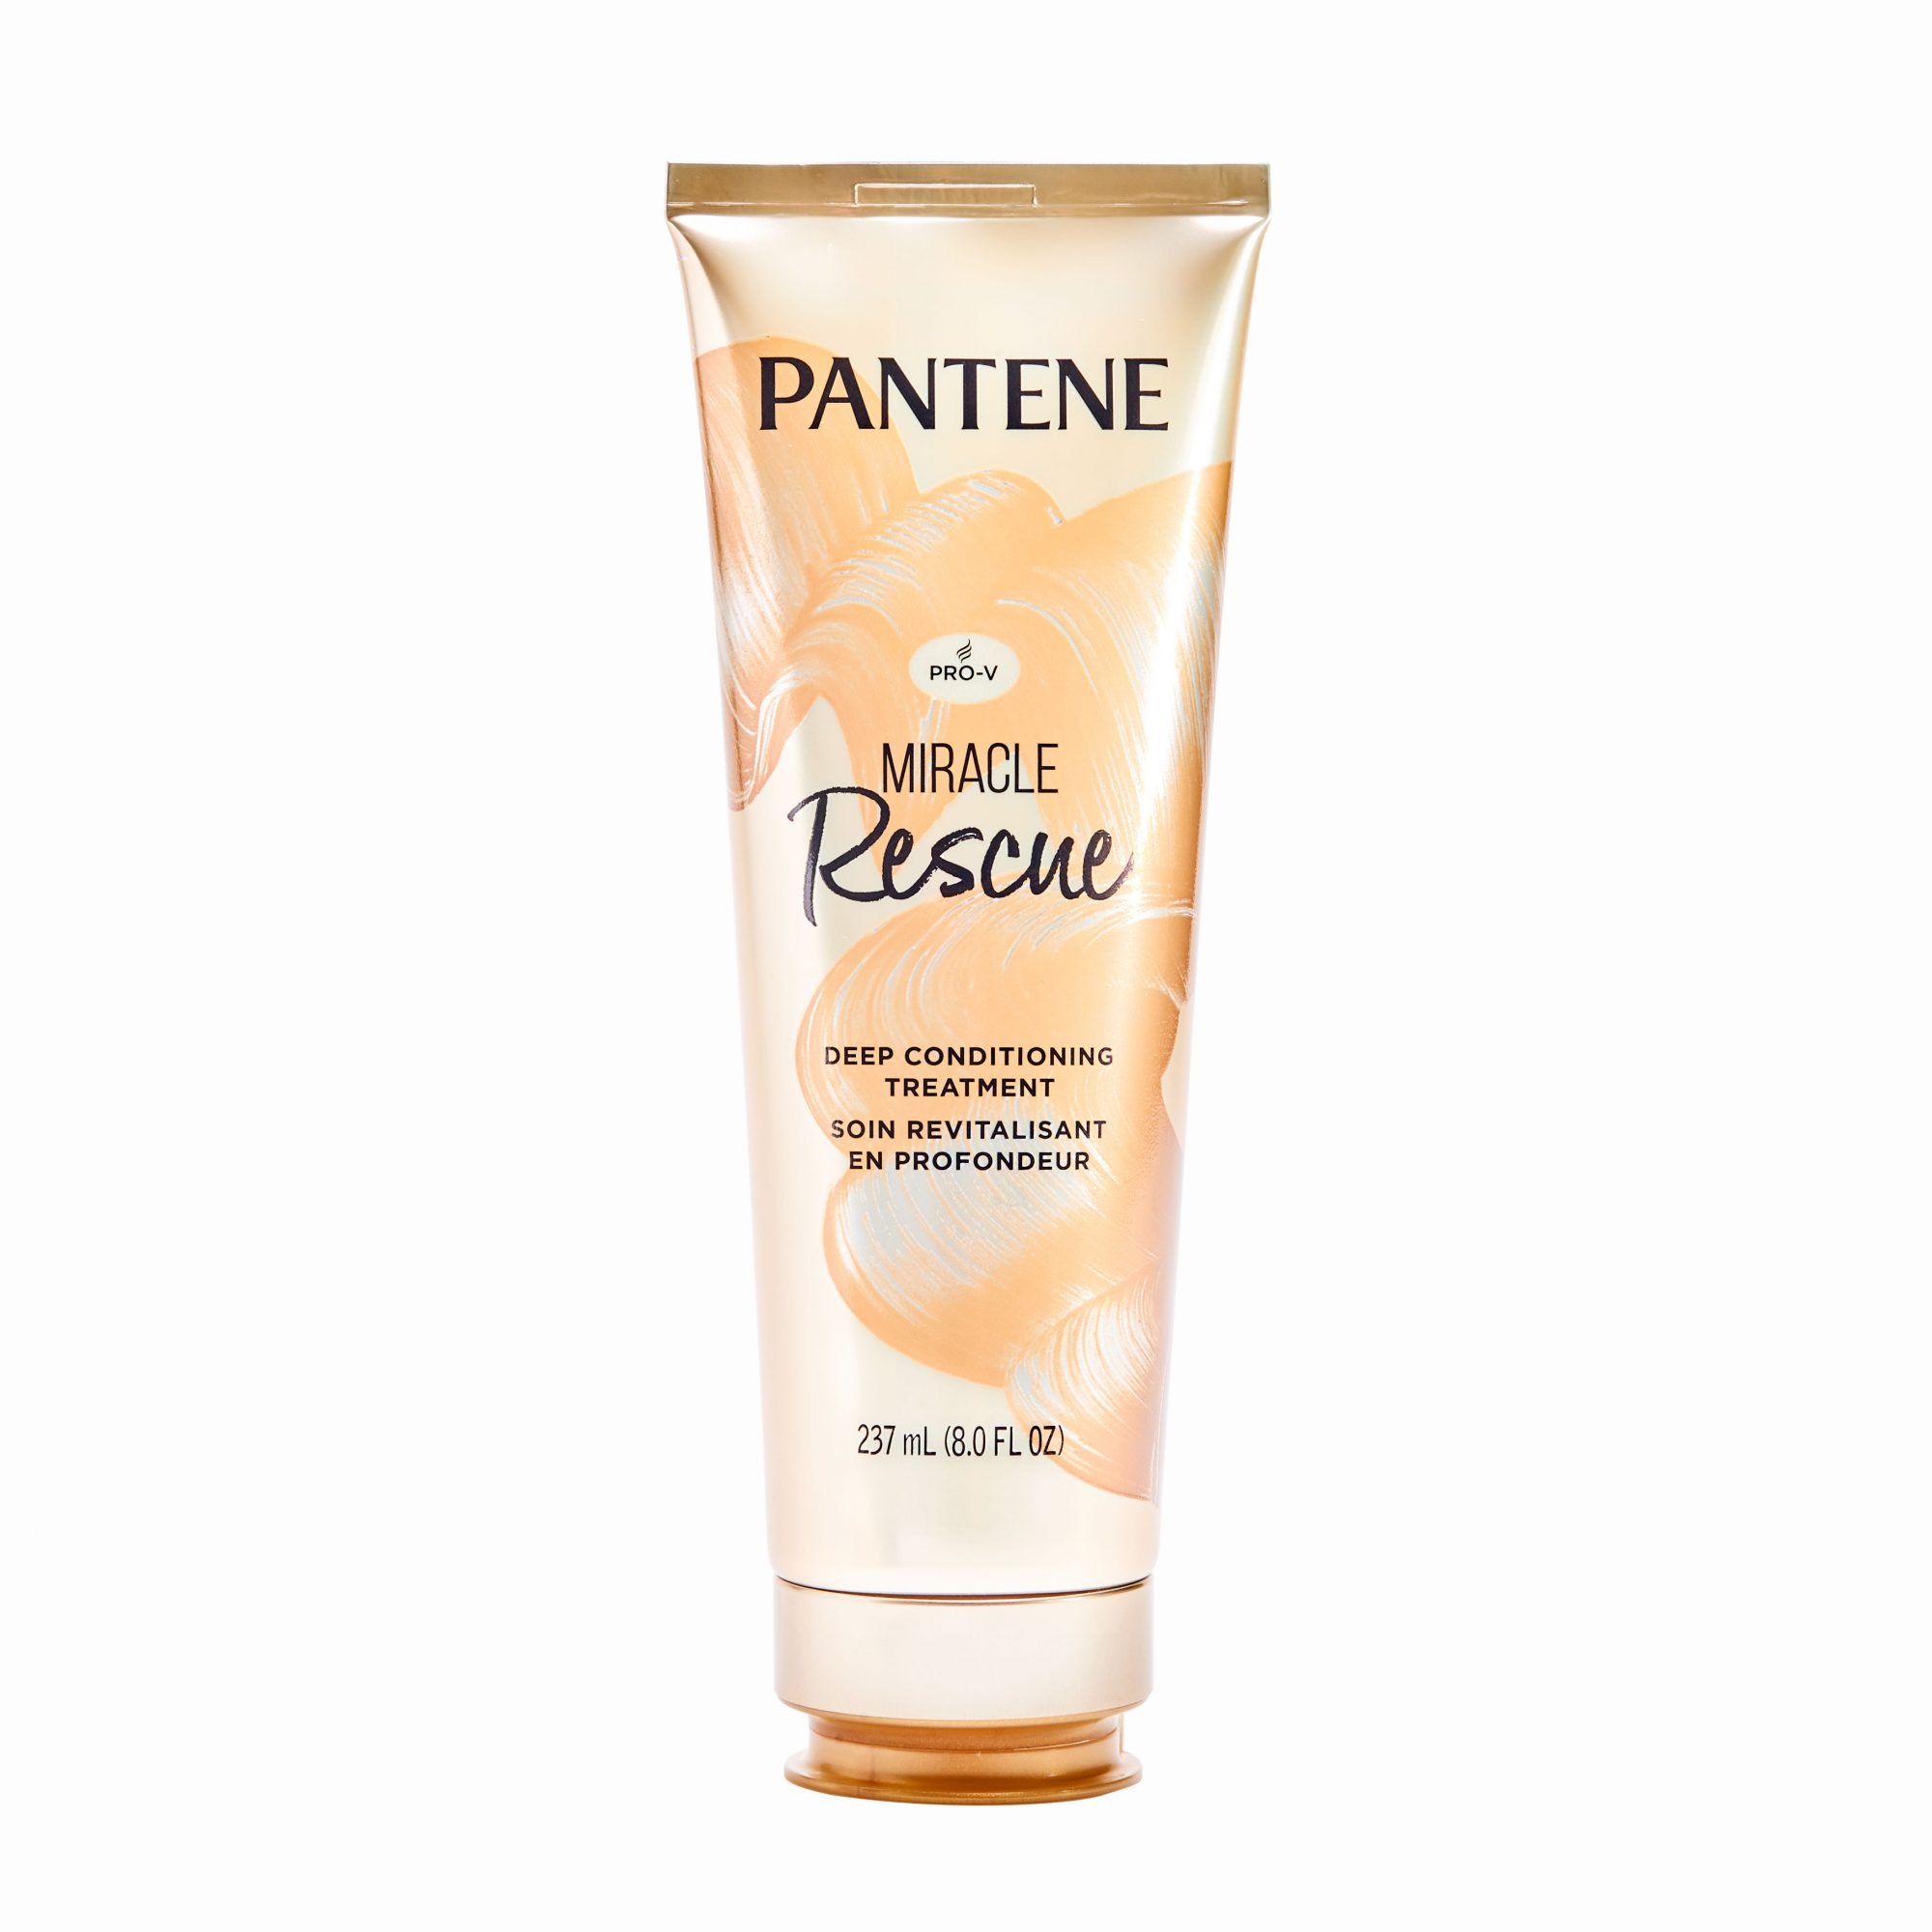 Pantene Miracle Rescue Deep Conditioning Treatment